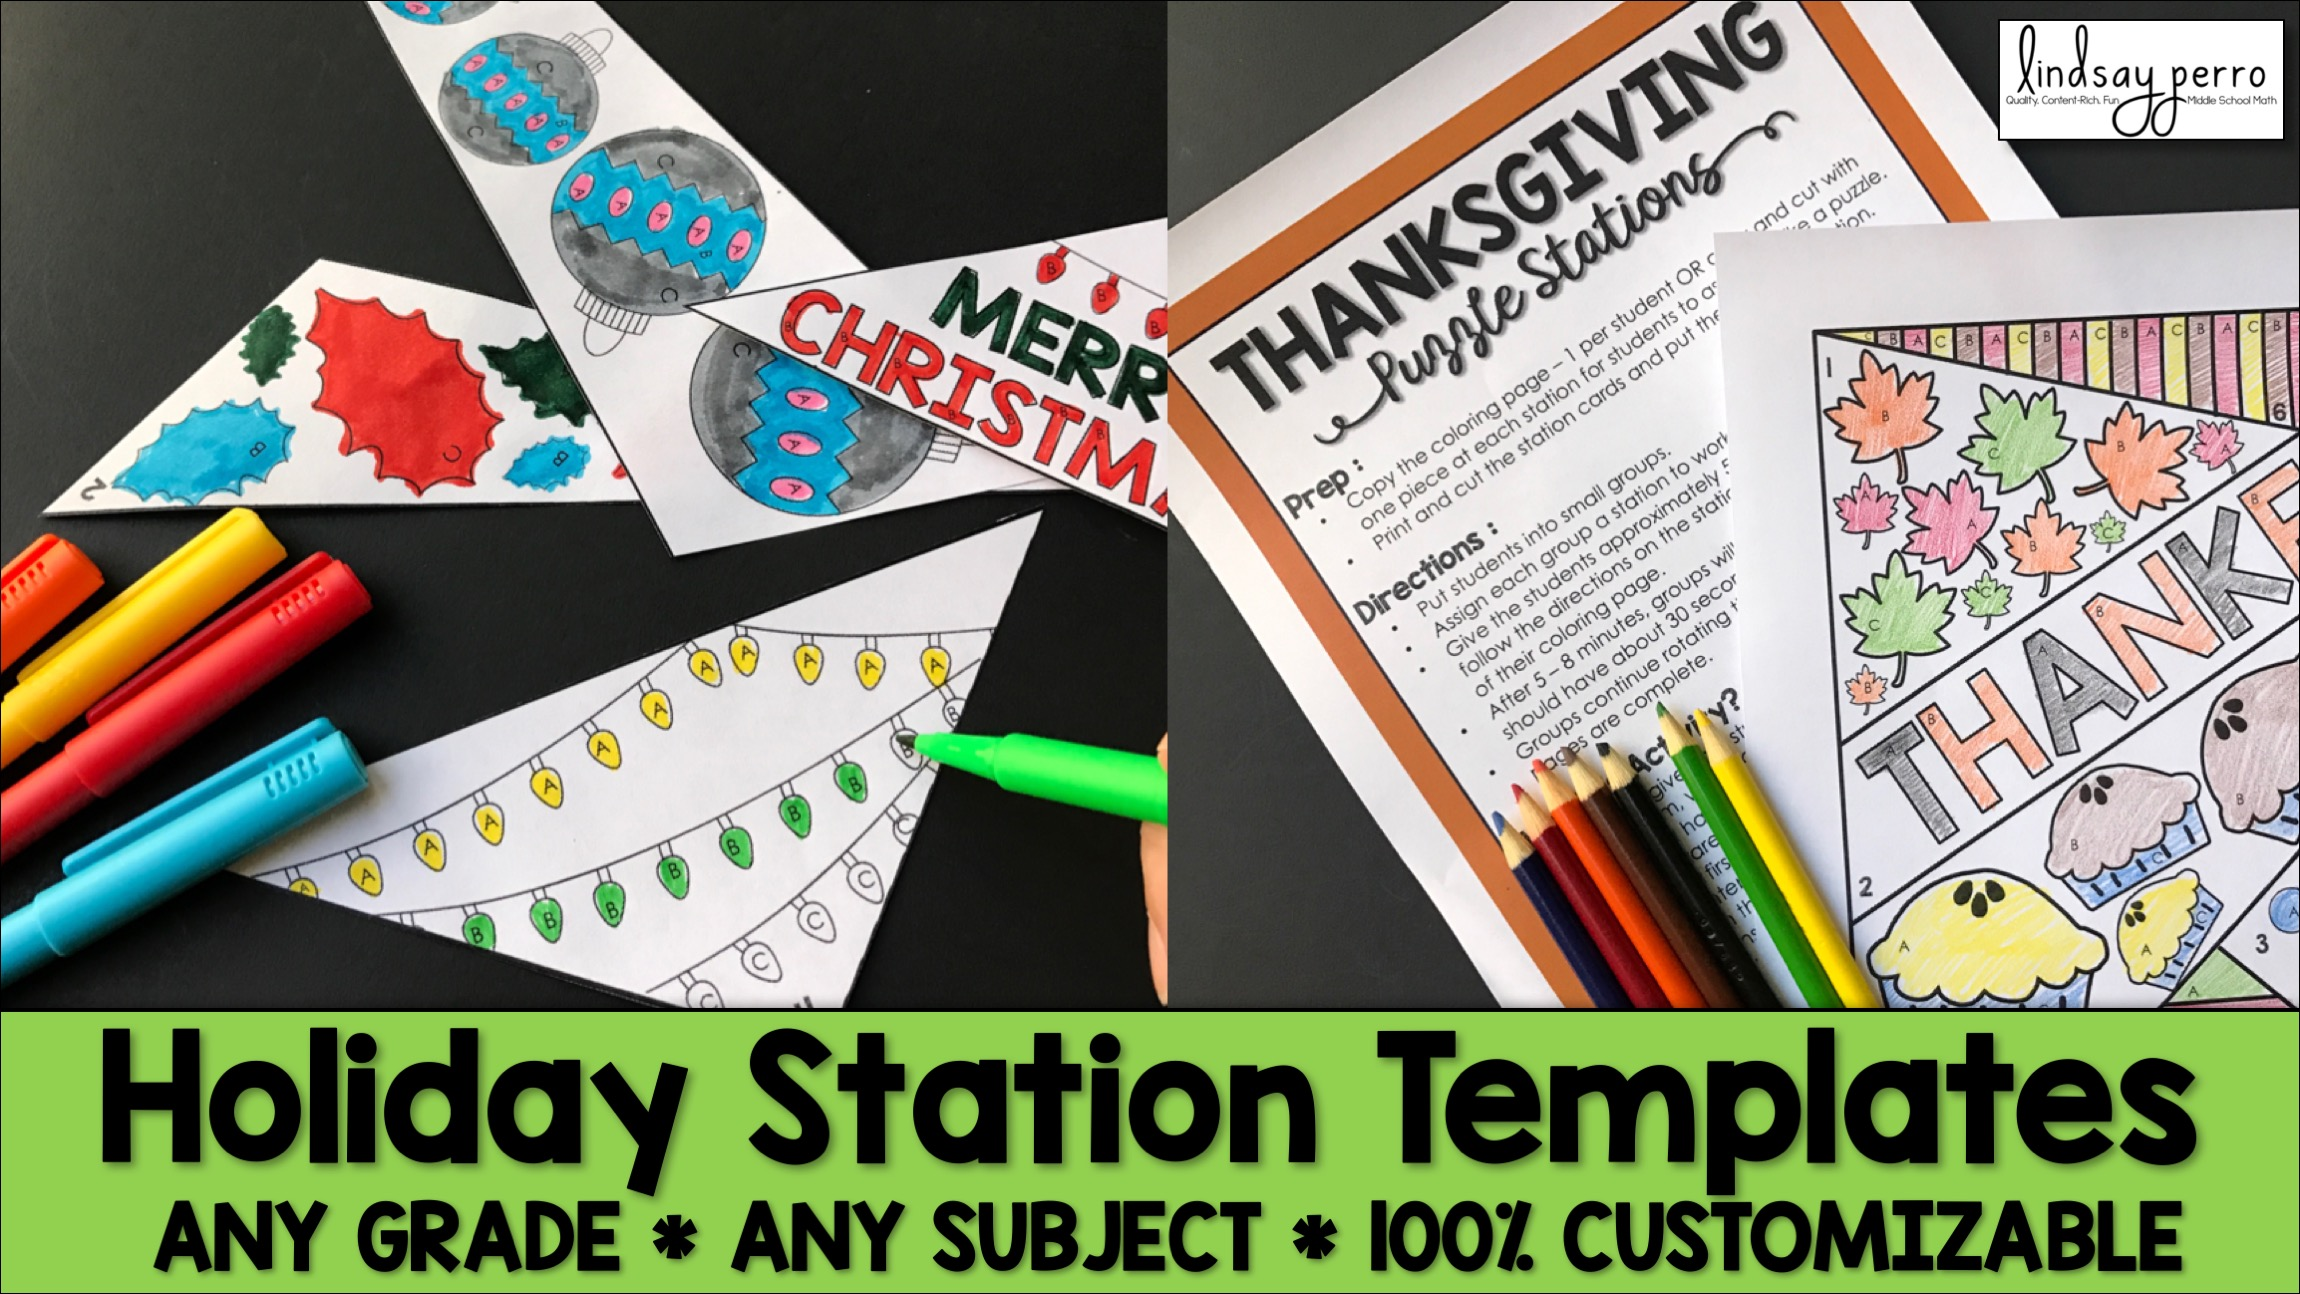 Holiday Station Templates